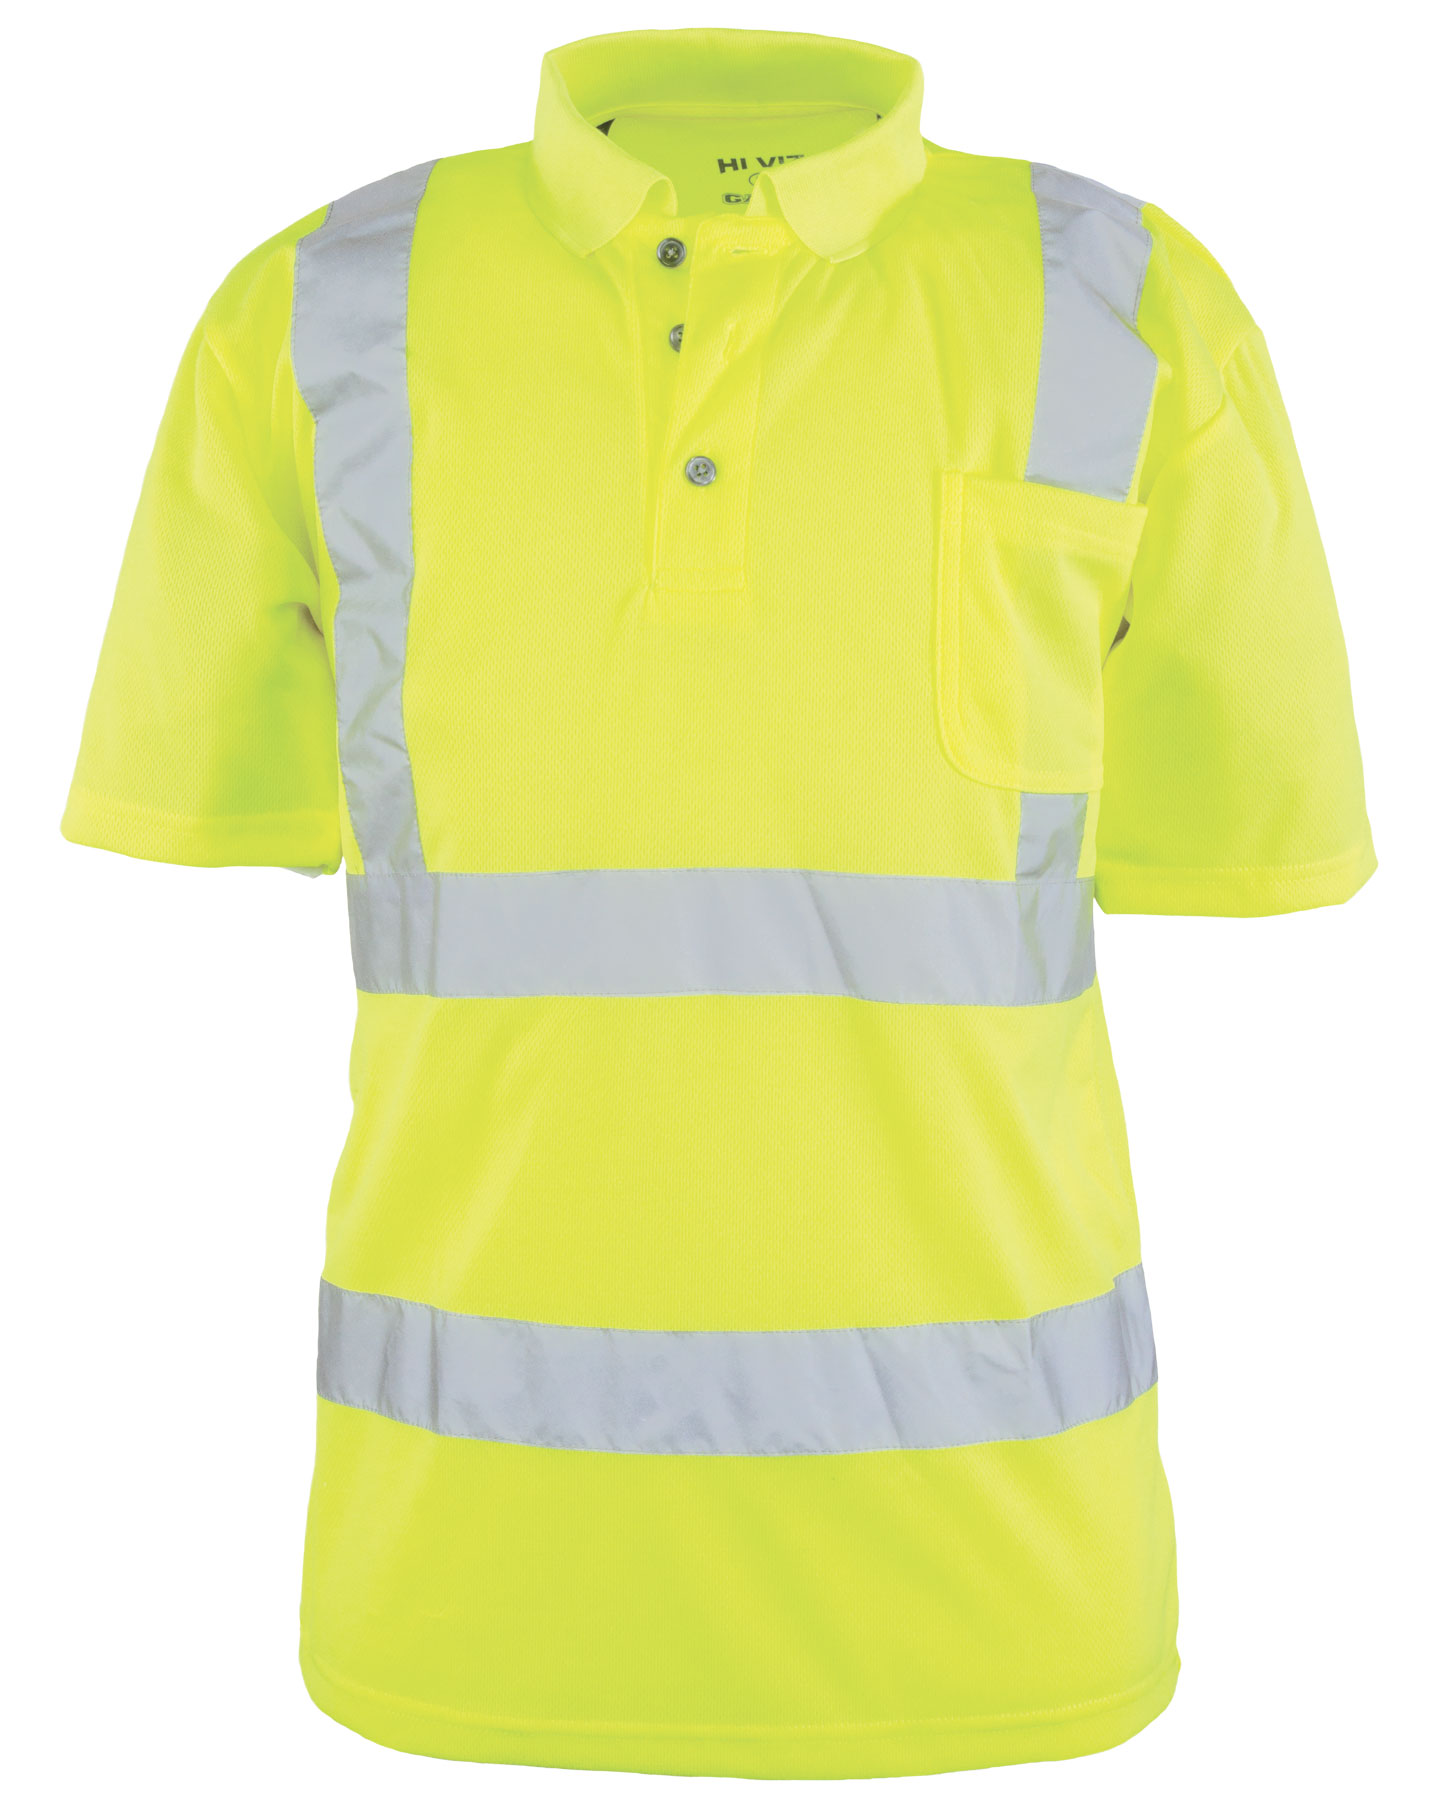 TheANSI/ISEA 107-2004 Class 2  Foreman Polo